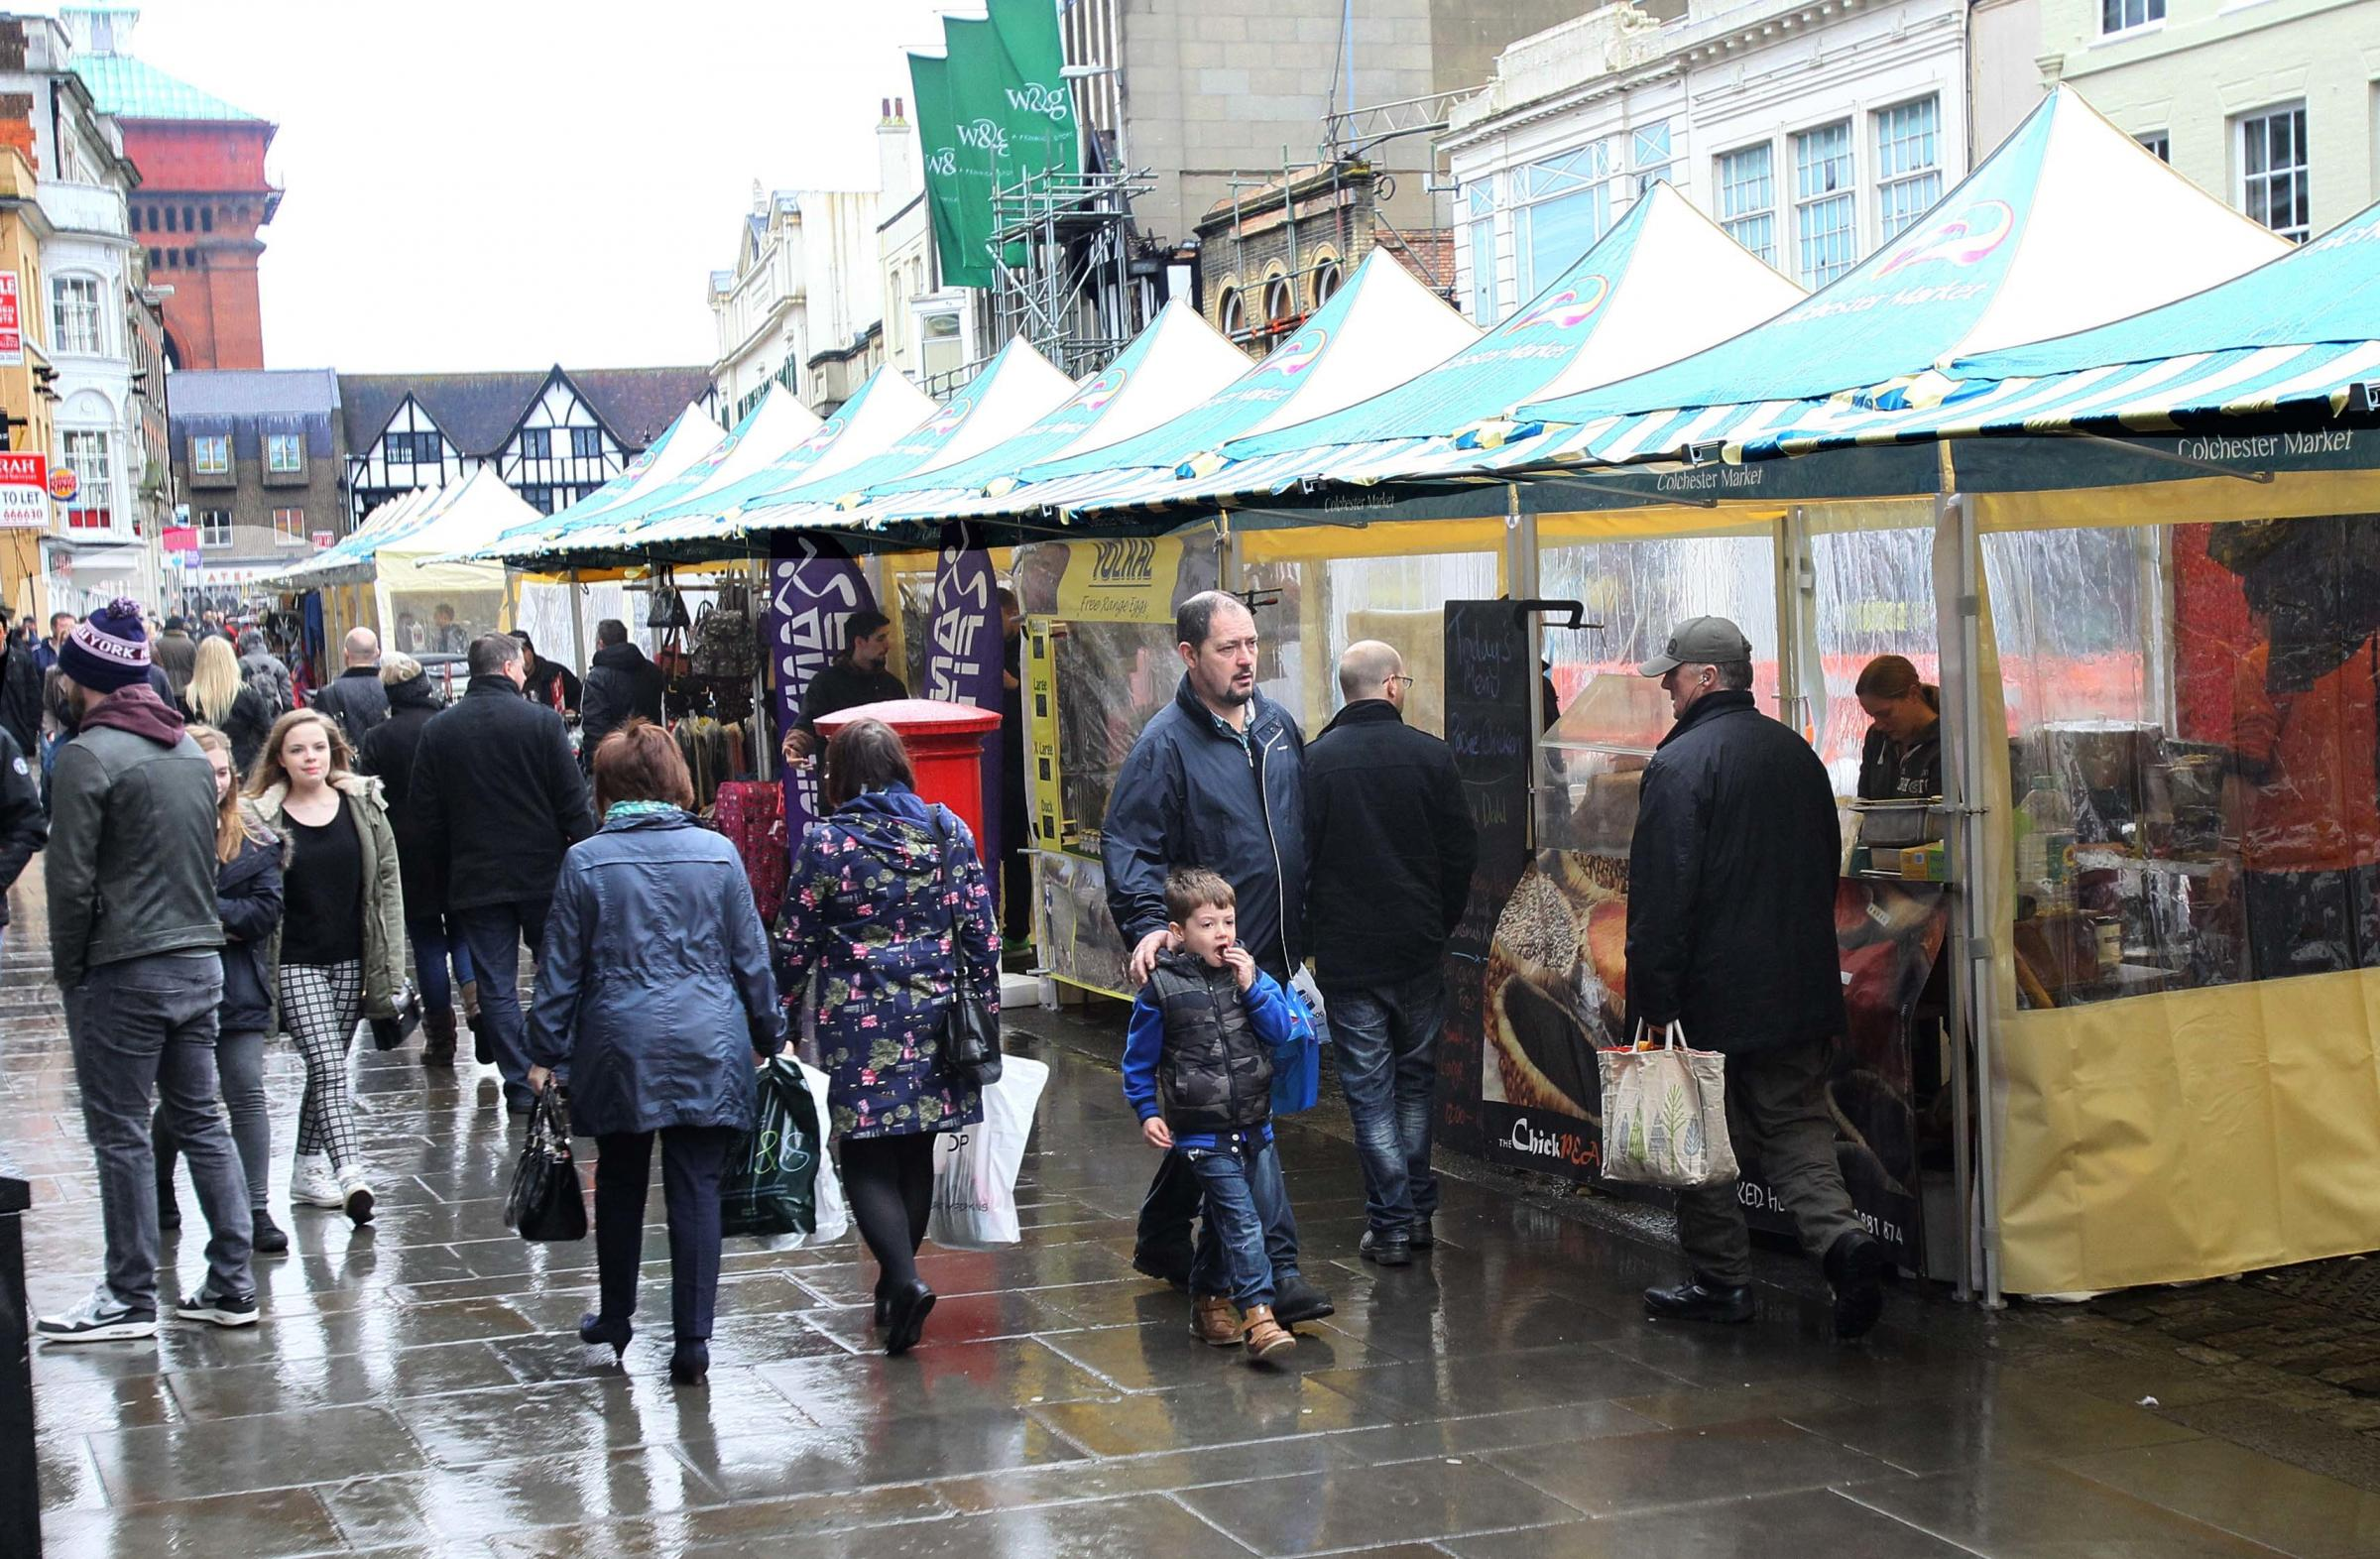 Colchester Market Could Be Moved From High Street To Revive It Maldon And Burnham Standard